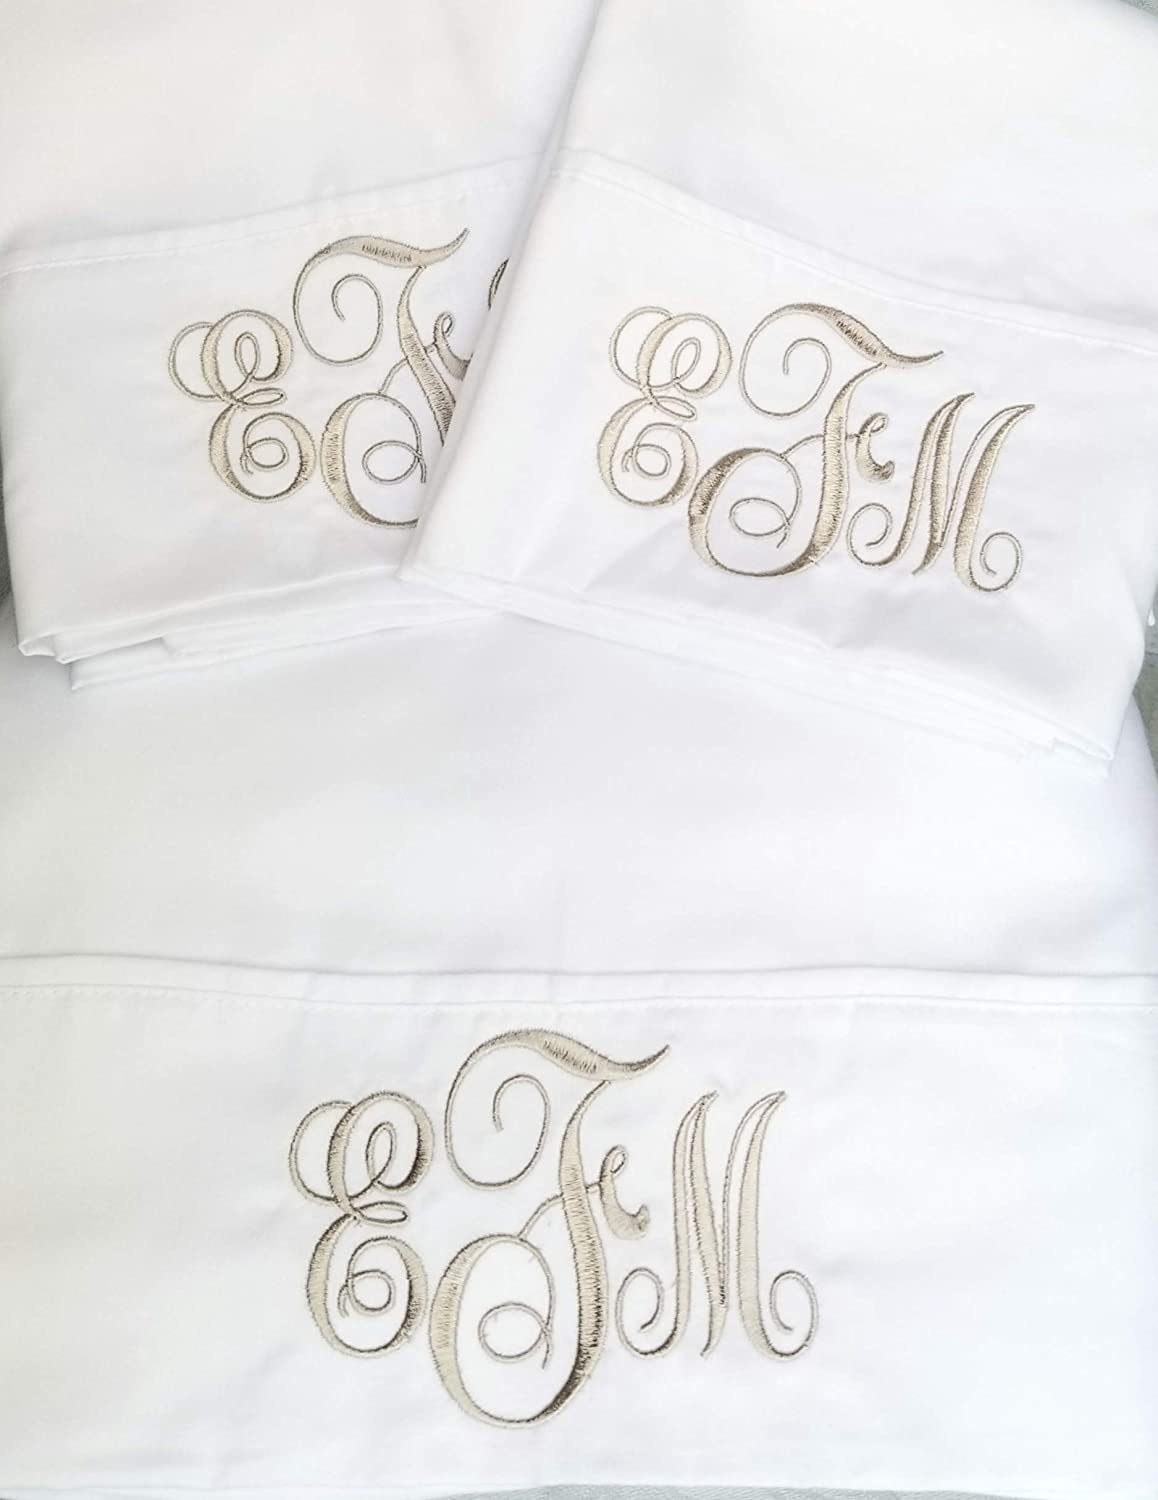 Monogrammed Sheet Set Custom Embroidery Monogrammed Personalized Sheets Bedding Queen Twin Full King